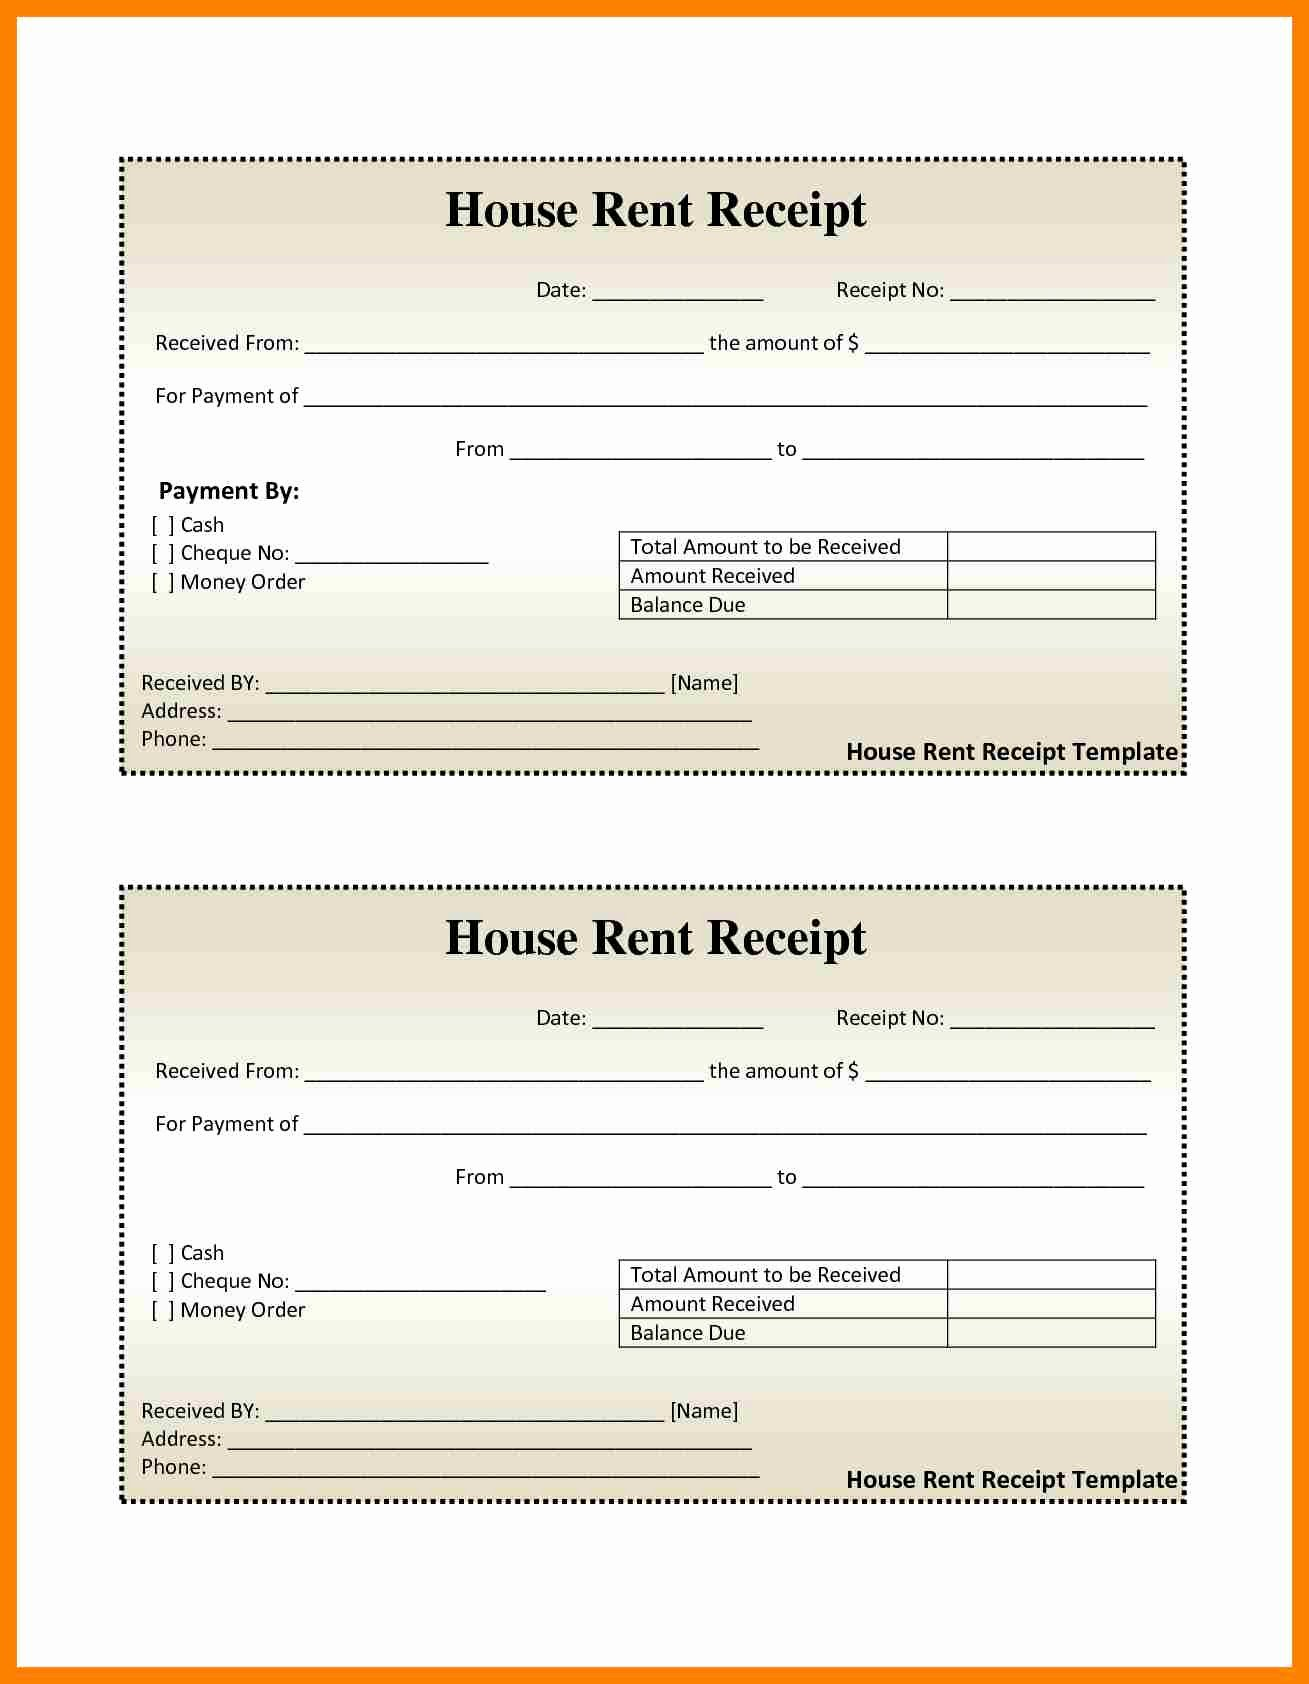 Paid In Full Receipt Template Inspirational Paid Receipt Bamboodownunder